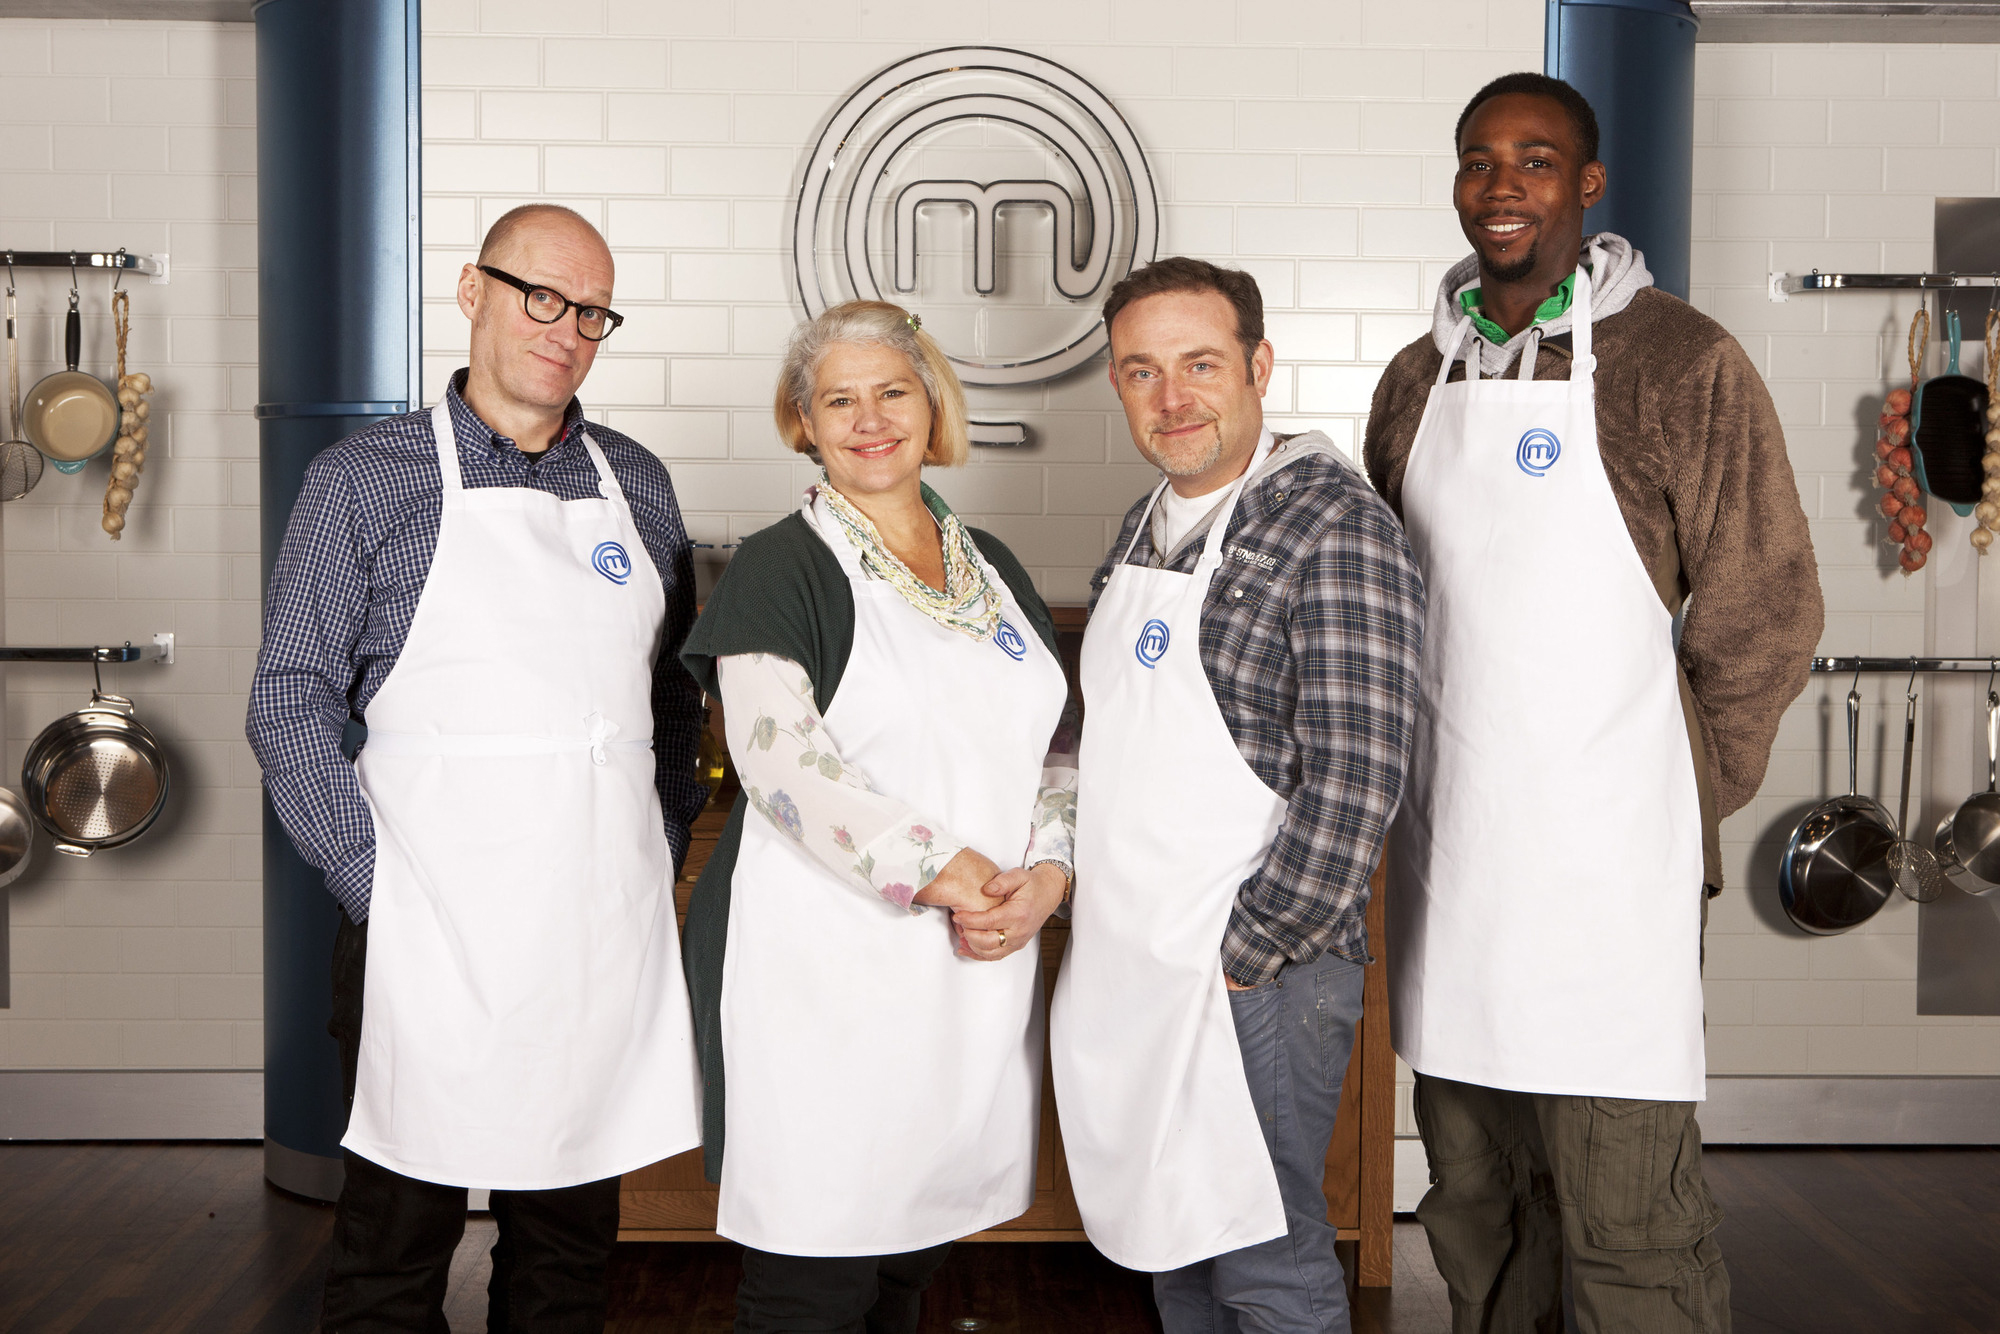 Ade Edmondson wins over viewers with Celebrity Masterchef prowess